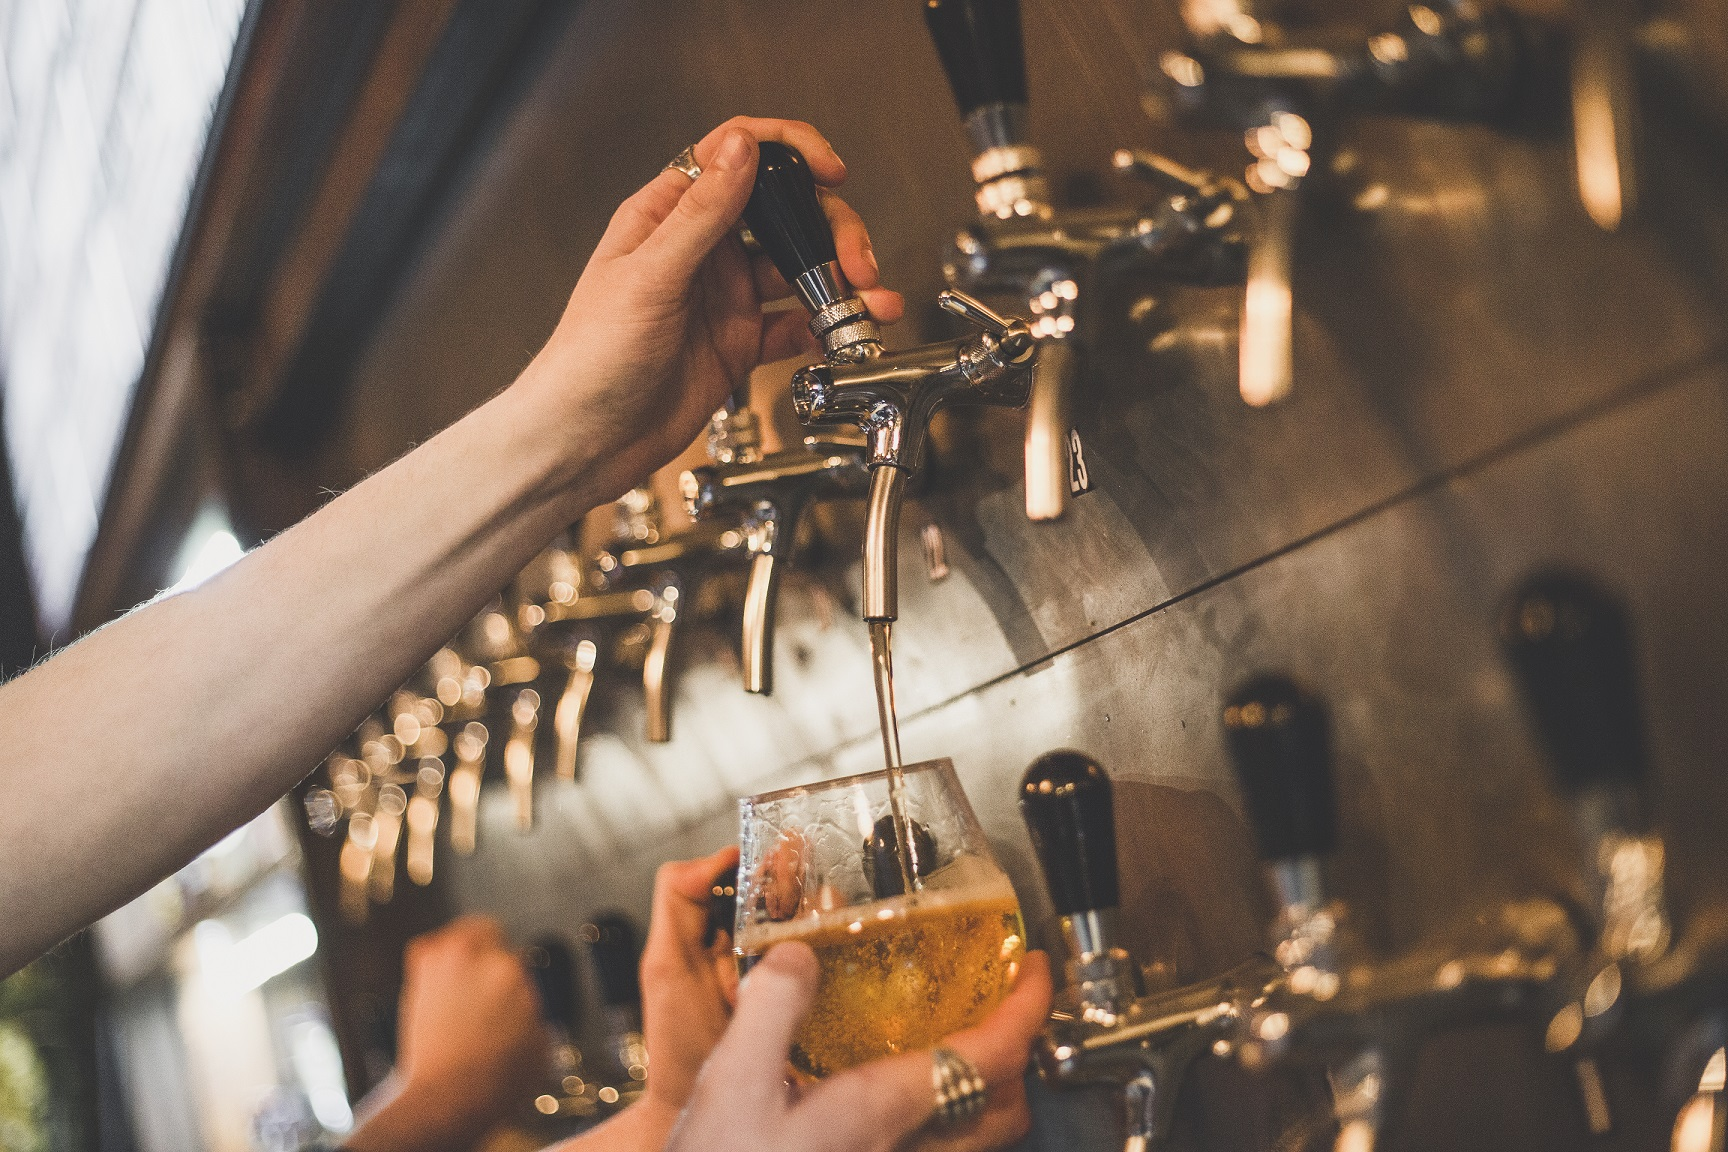 Taphouse Brewpub offers almost 40 draught craft beers, lagers and ciders, as well as an extensive range of bottled and canned beers, quality wines and artisan spirits.